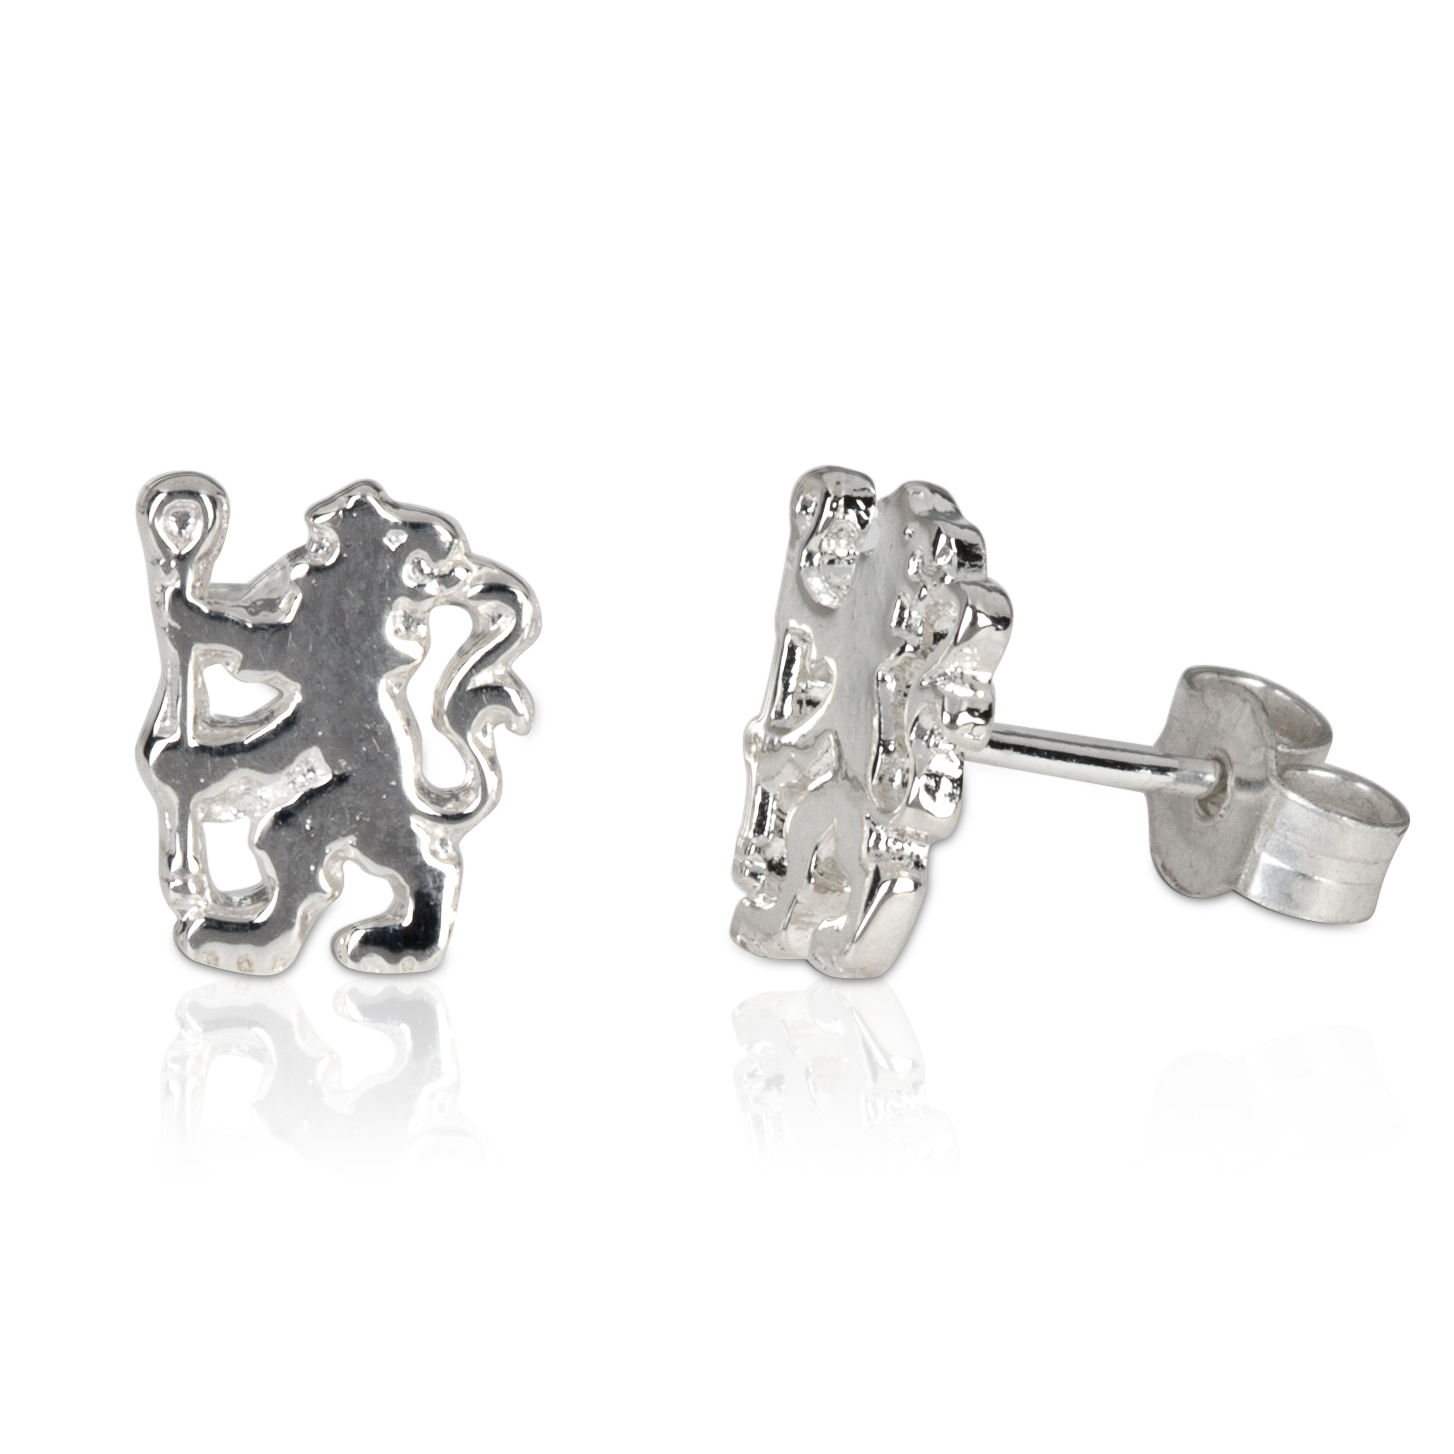 Chelsea Lion Stud Earrings Pair - Sterling Silver